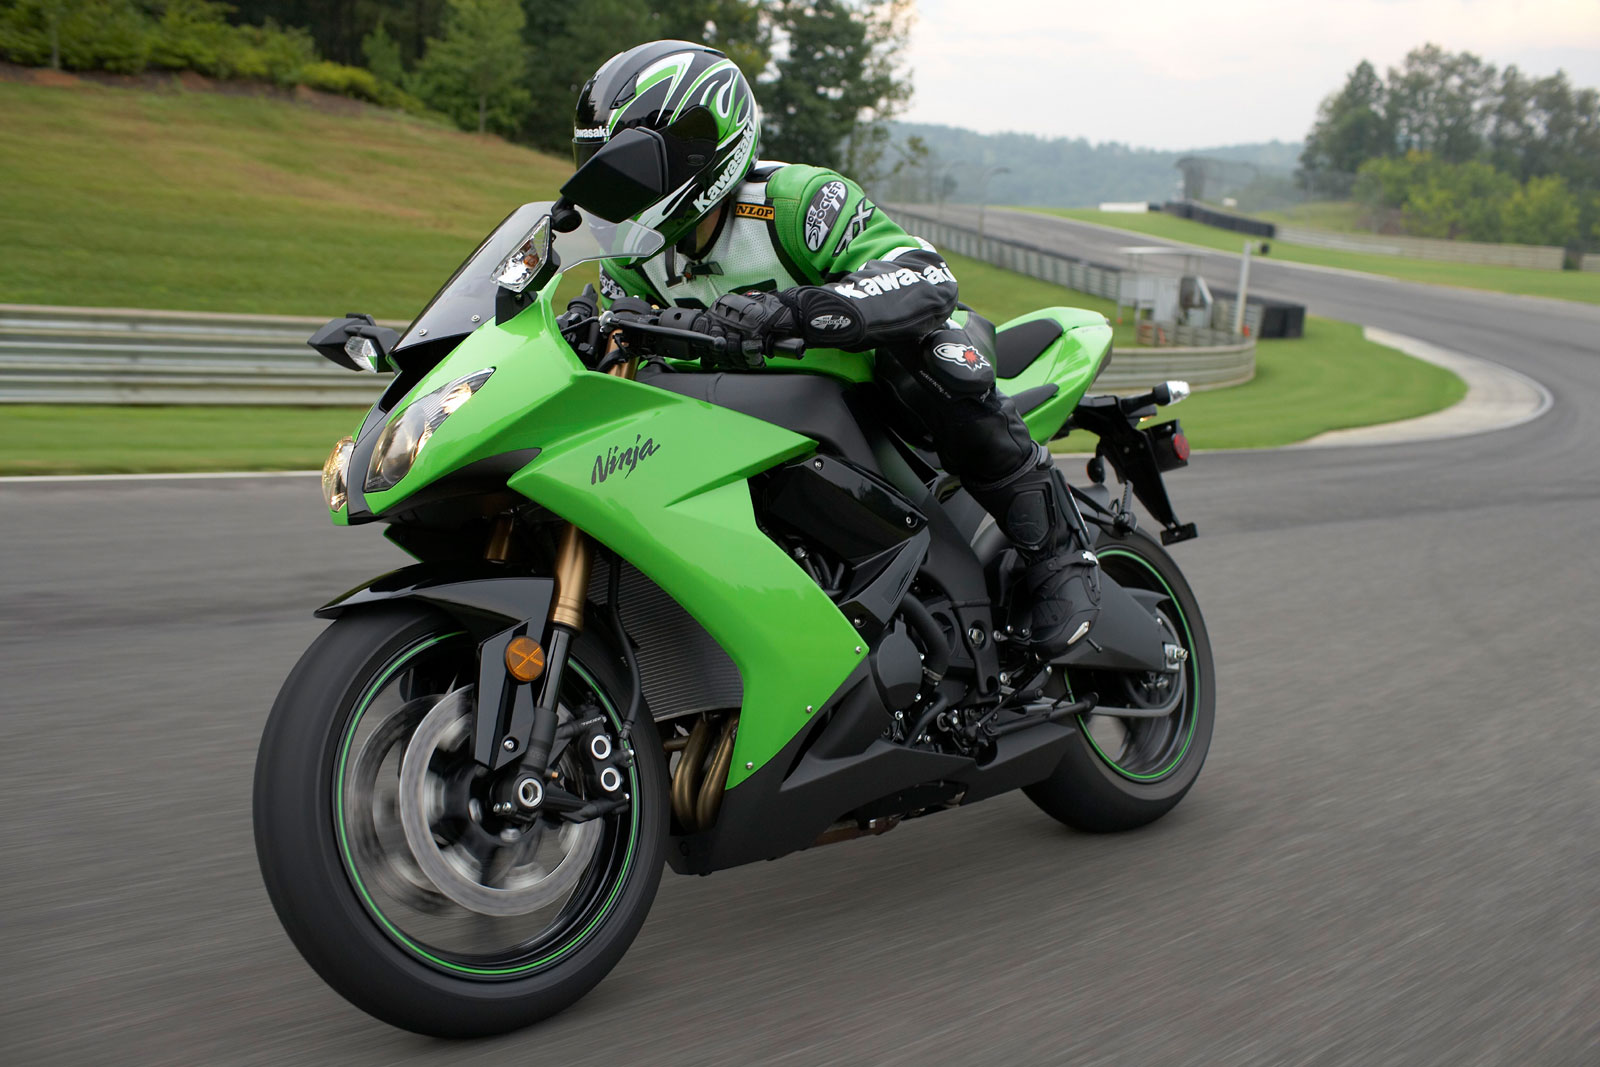 2004 Zx10r Specs – HD Wallpapers